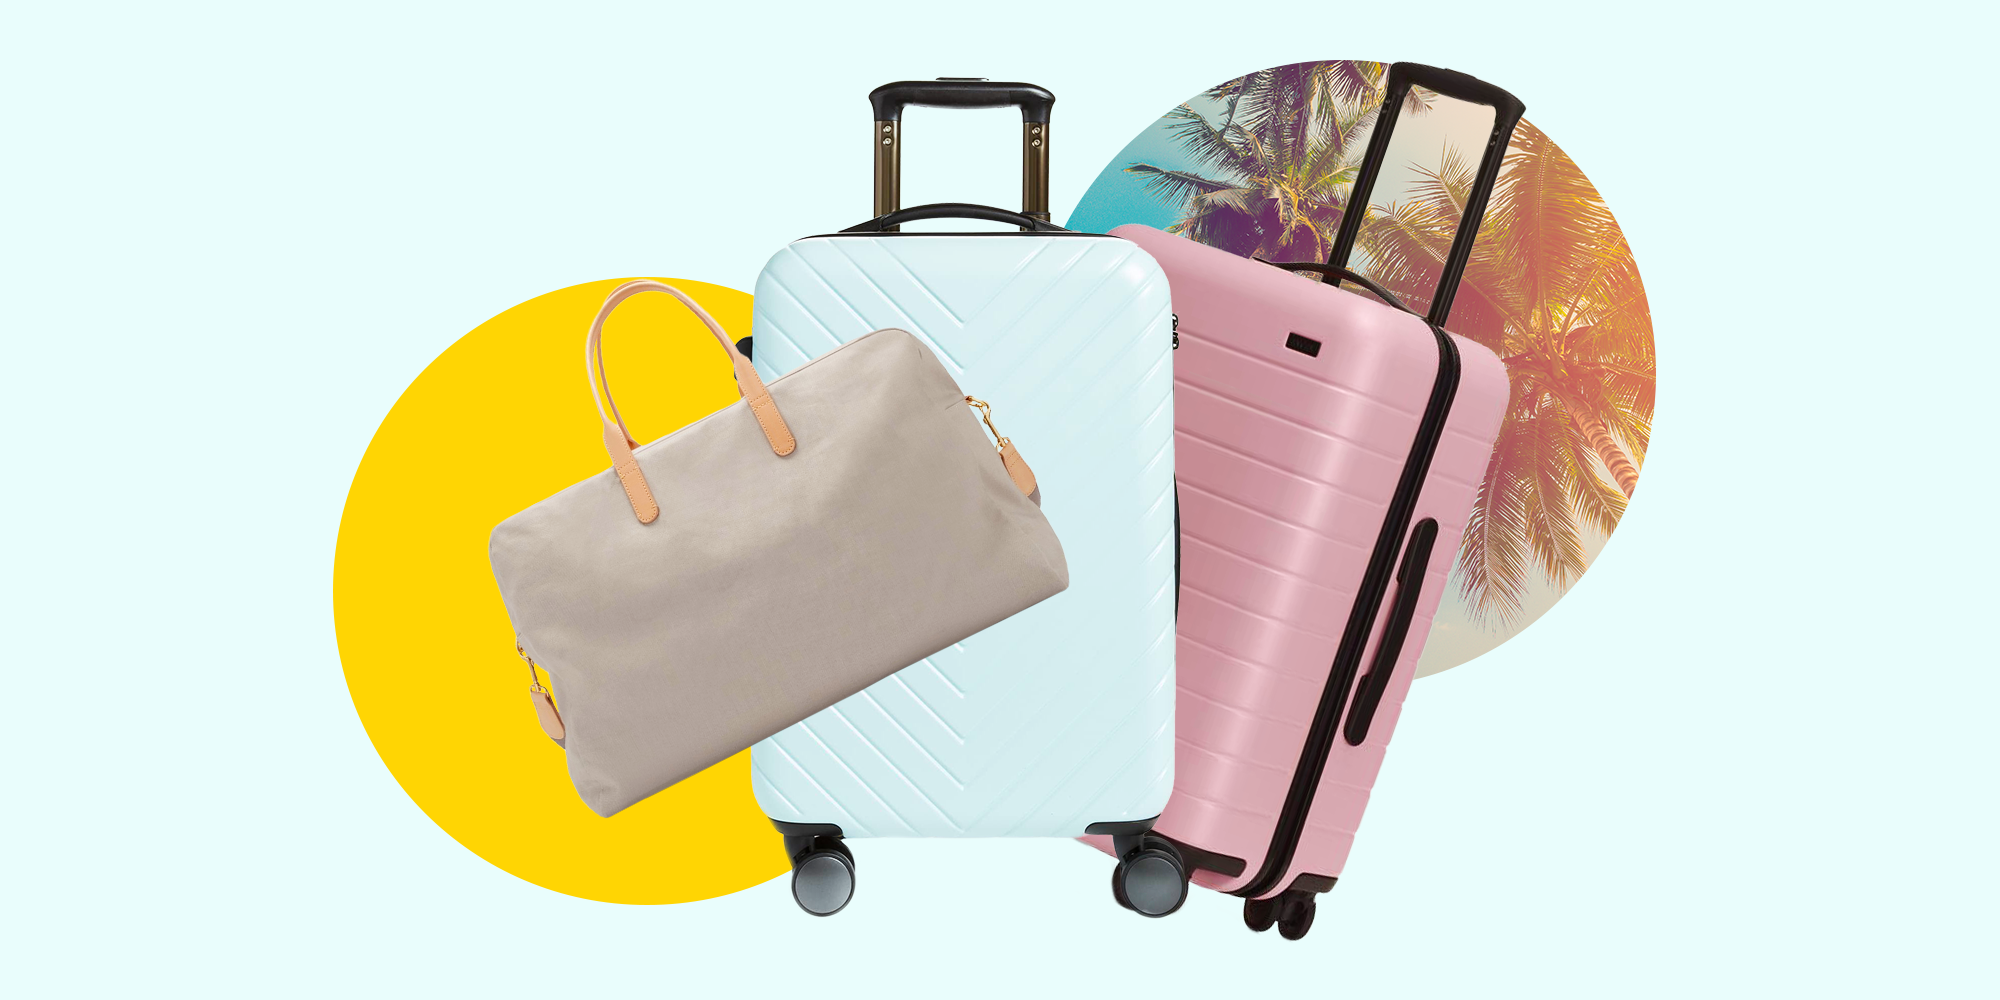 24c677965 15 Lightweight Suitcases - These Pieces of Luggage Are so Light